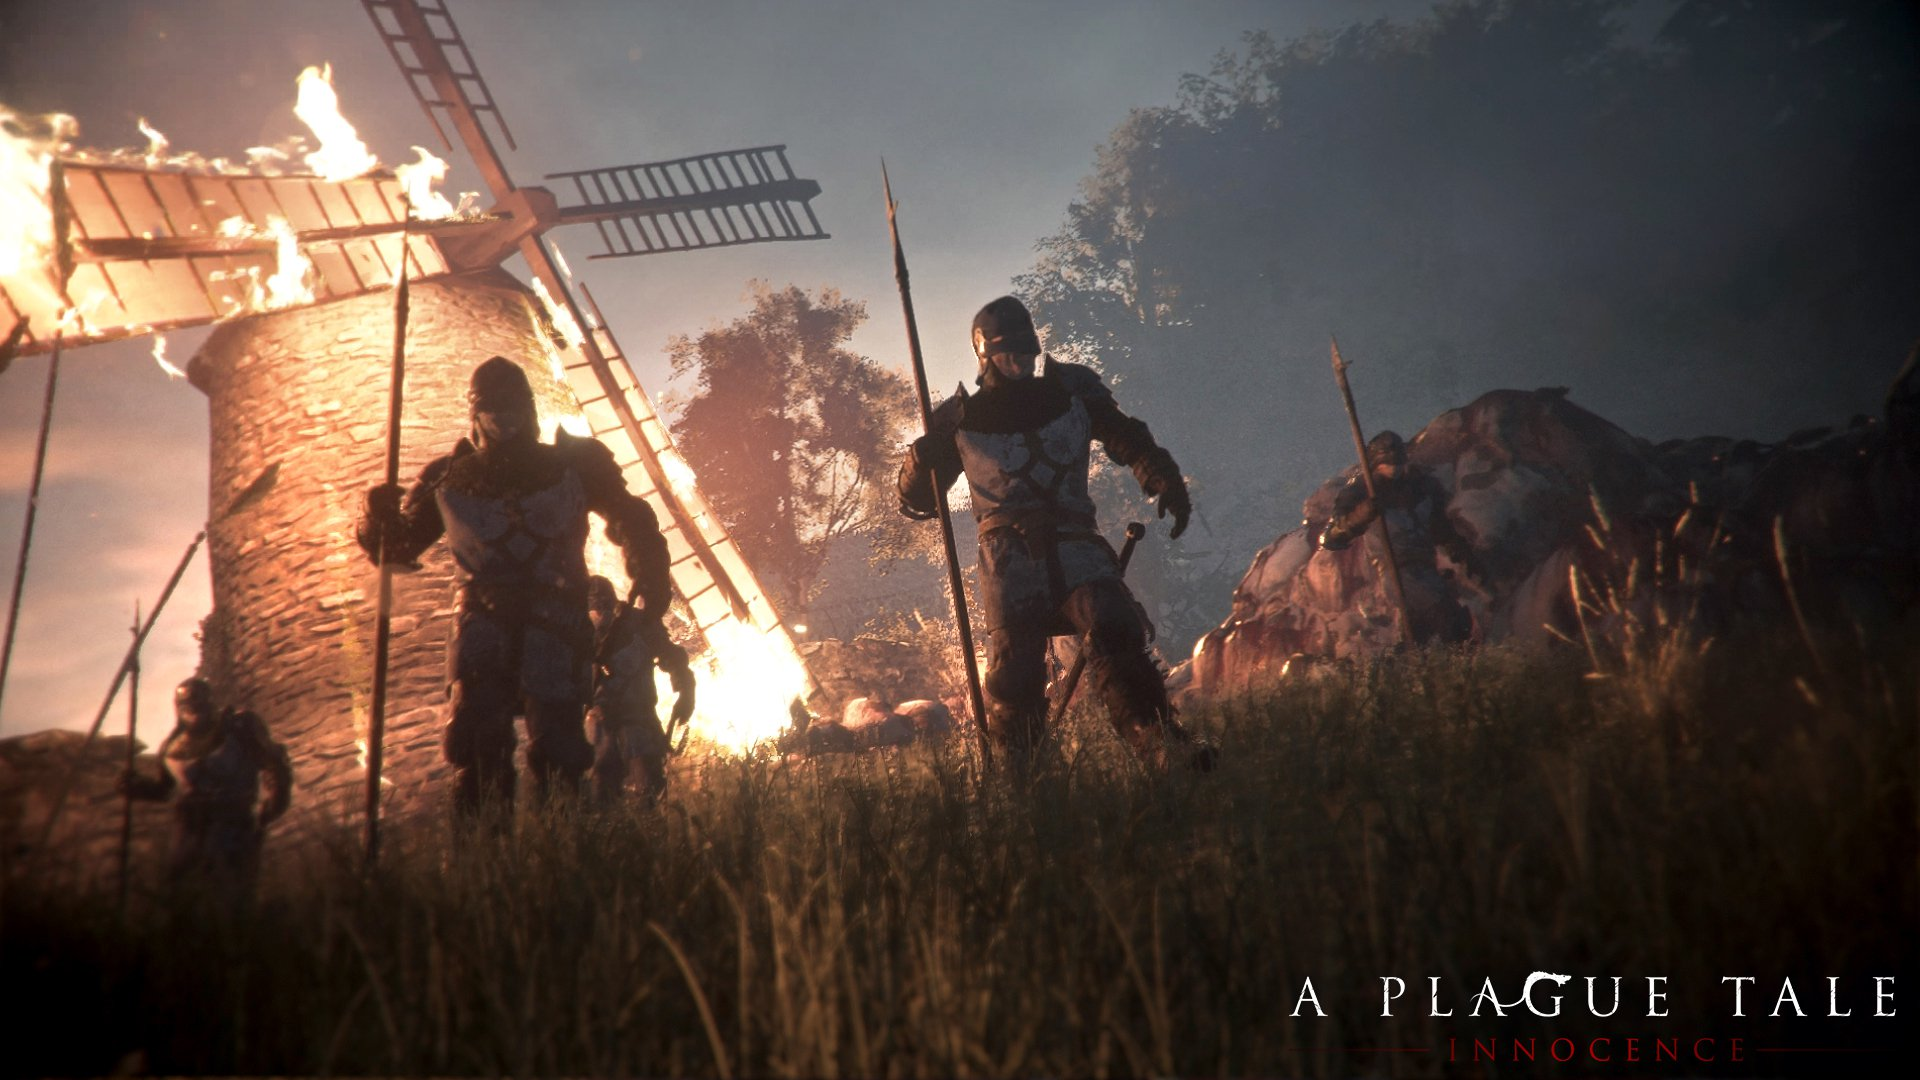 a plague tale innocence video game hd wallpaper 67486